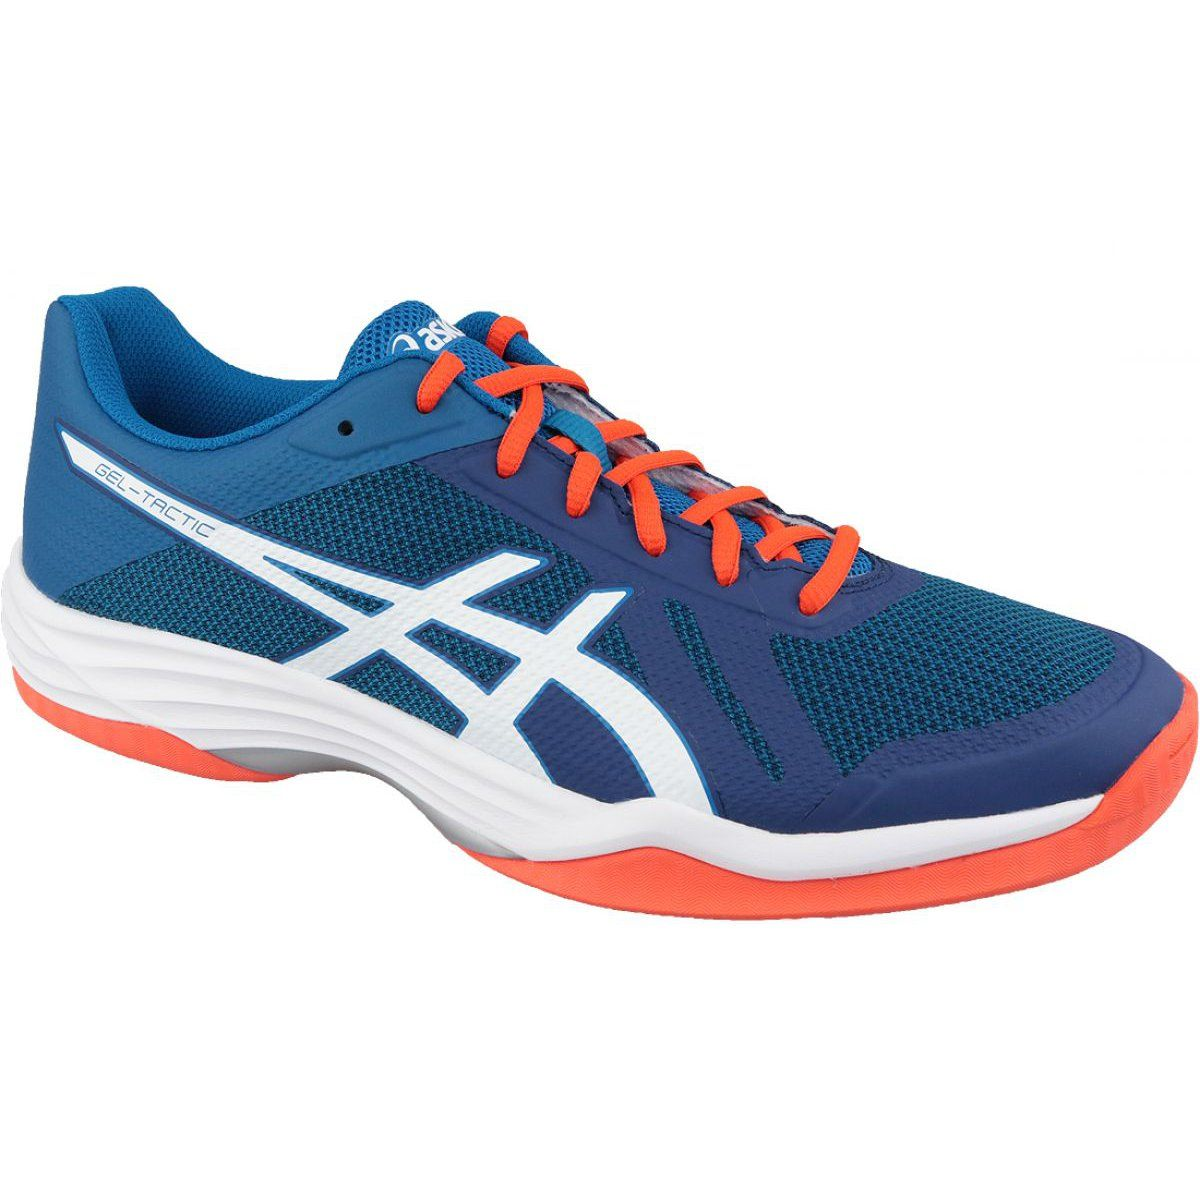 Volleyball Shoes Asics Gel Tactic M B702n 401 Blue Navy Blue Volleyball Shoes Asics Volleyball